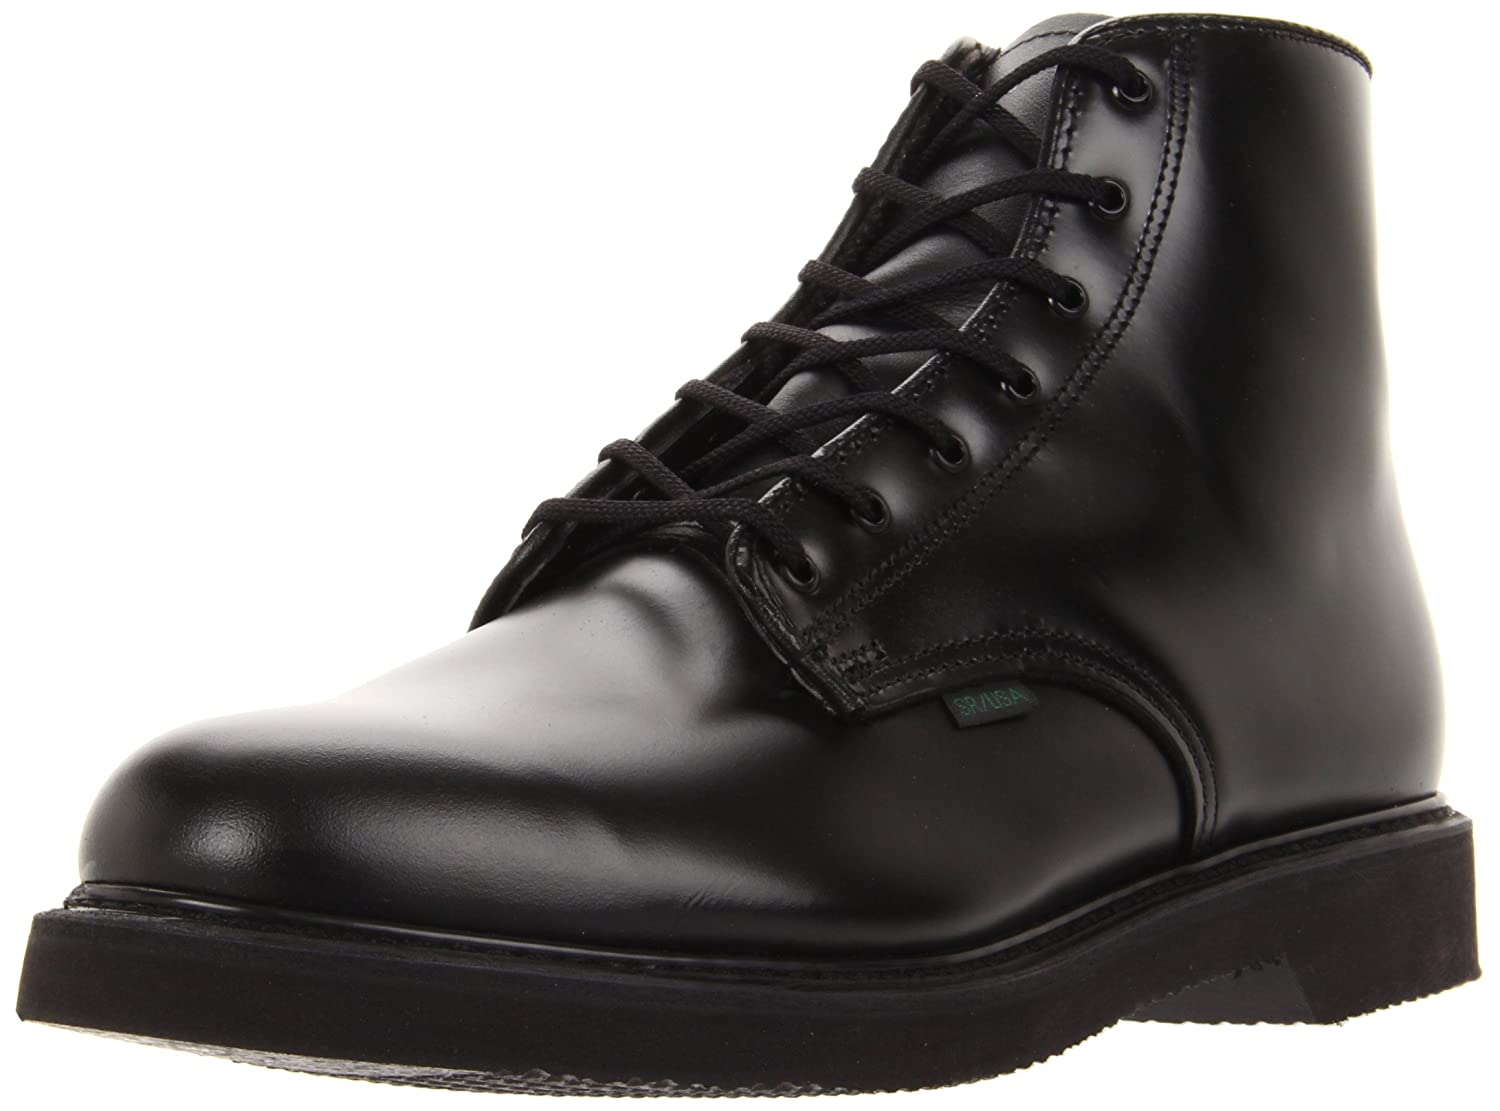 9 2E in Black Bates Mens Lites 6 Leather Lace Up Boot